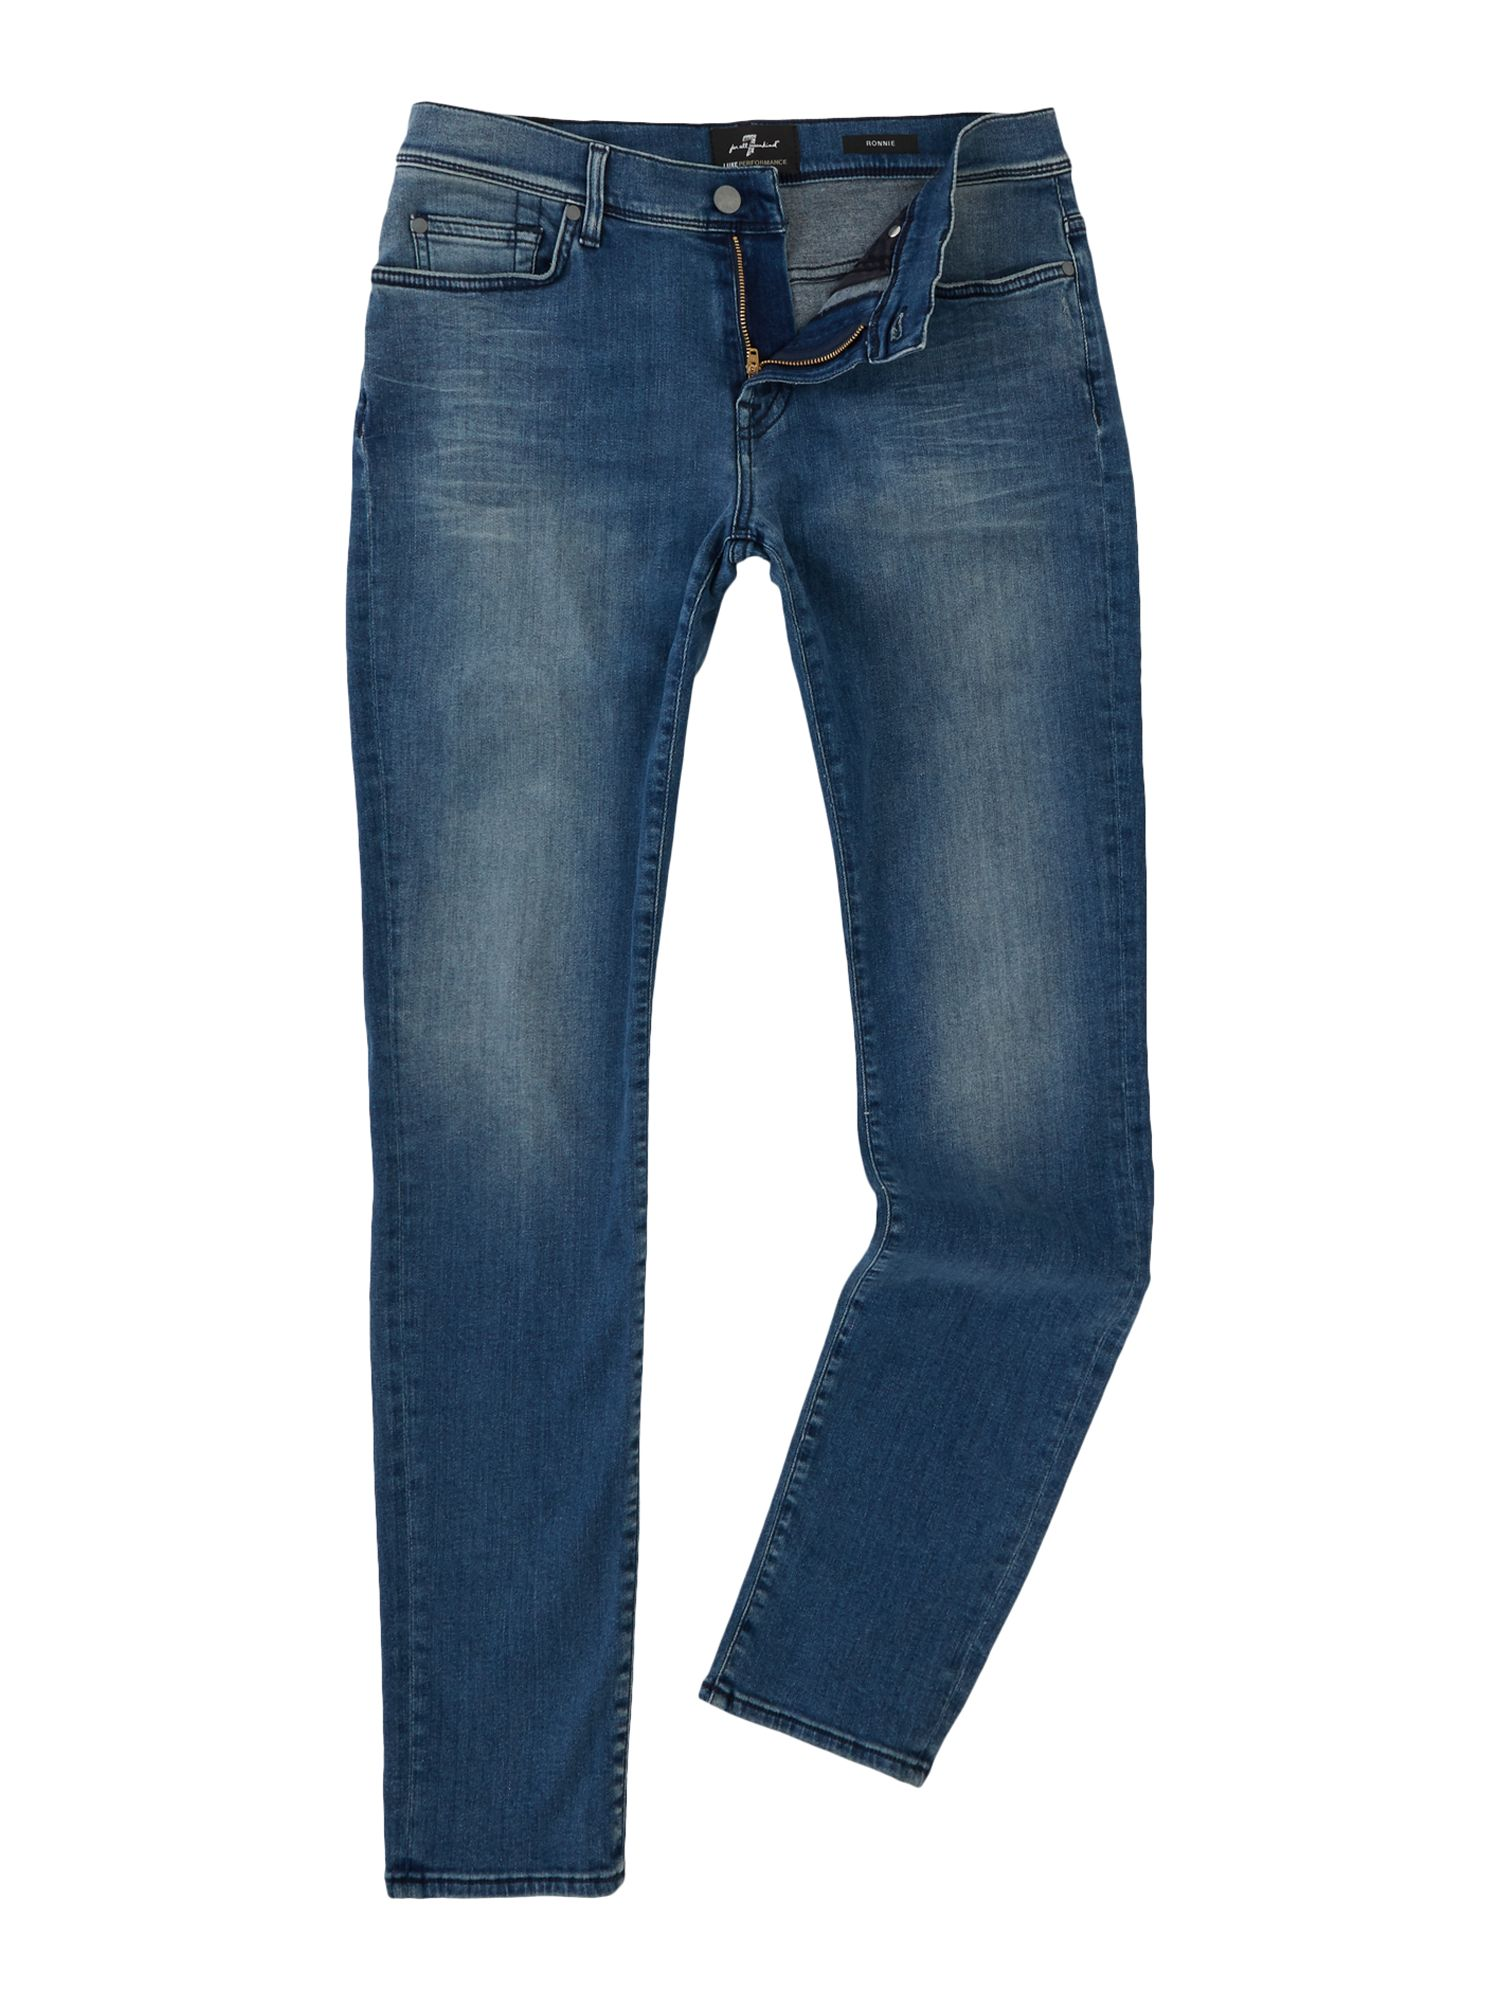 Mens Skinny Fit Ronnie Luxe Performance Jeans, Denim Light Wash